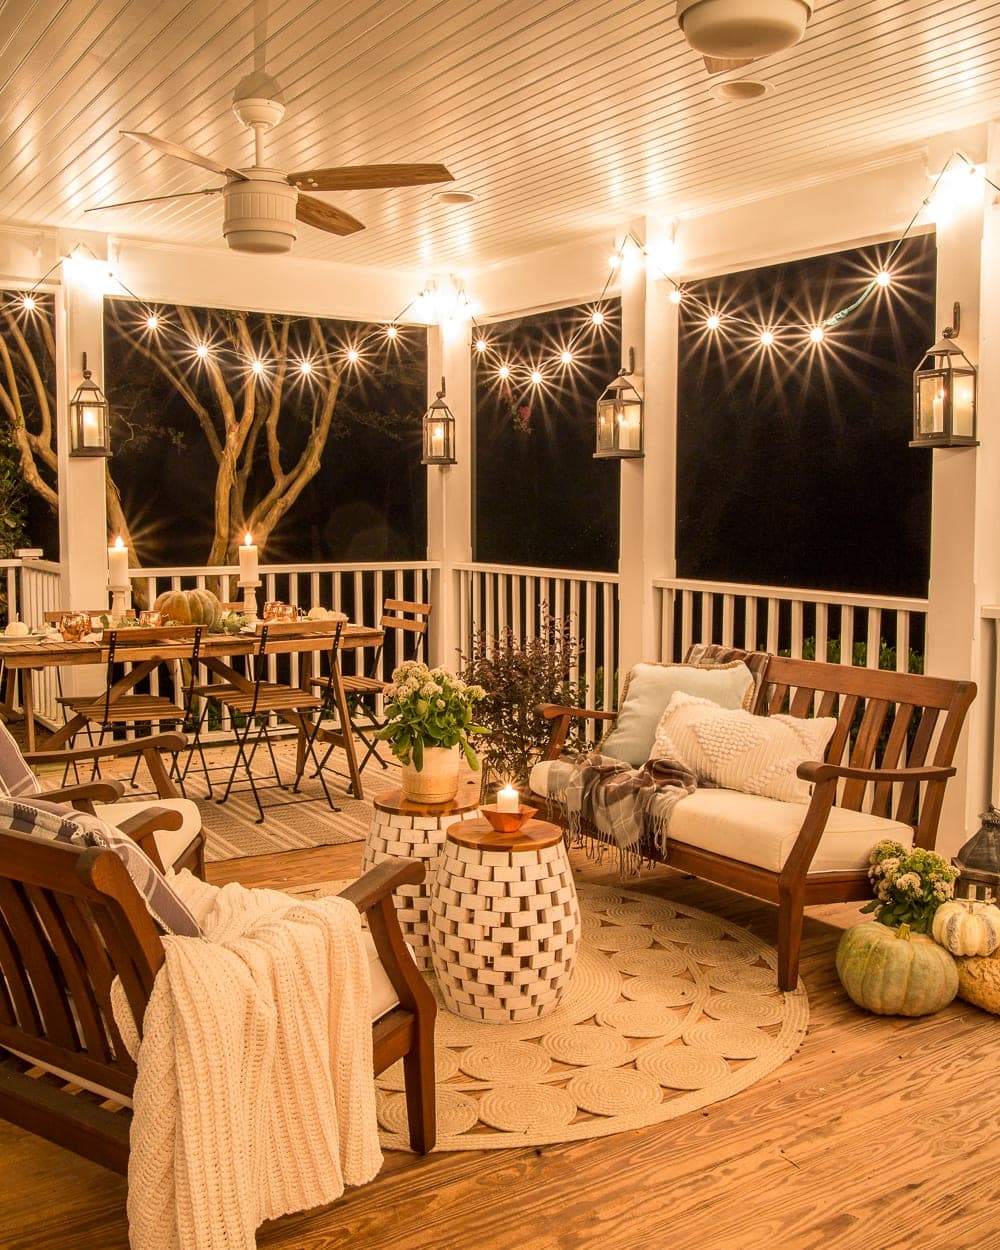 back porch decorated for fall with string lights